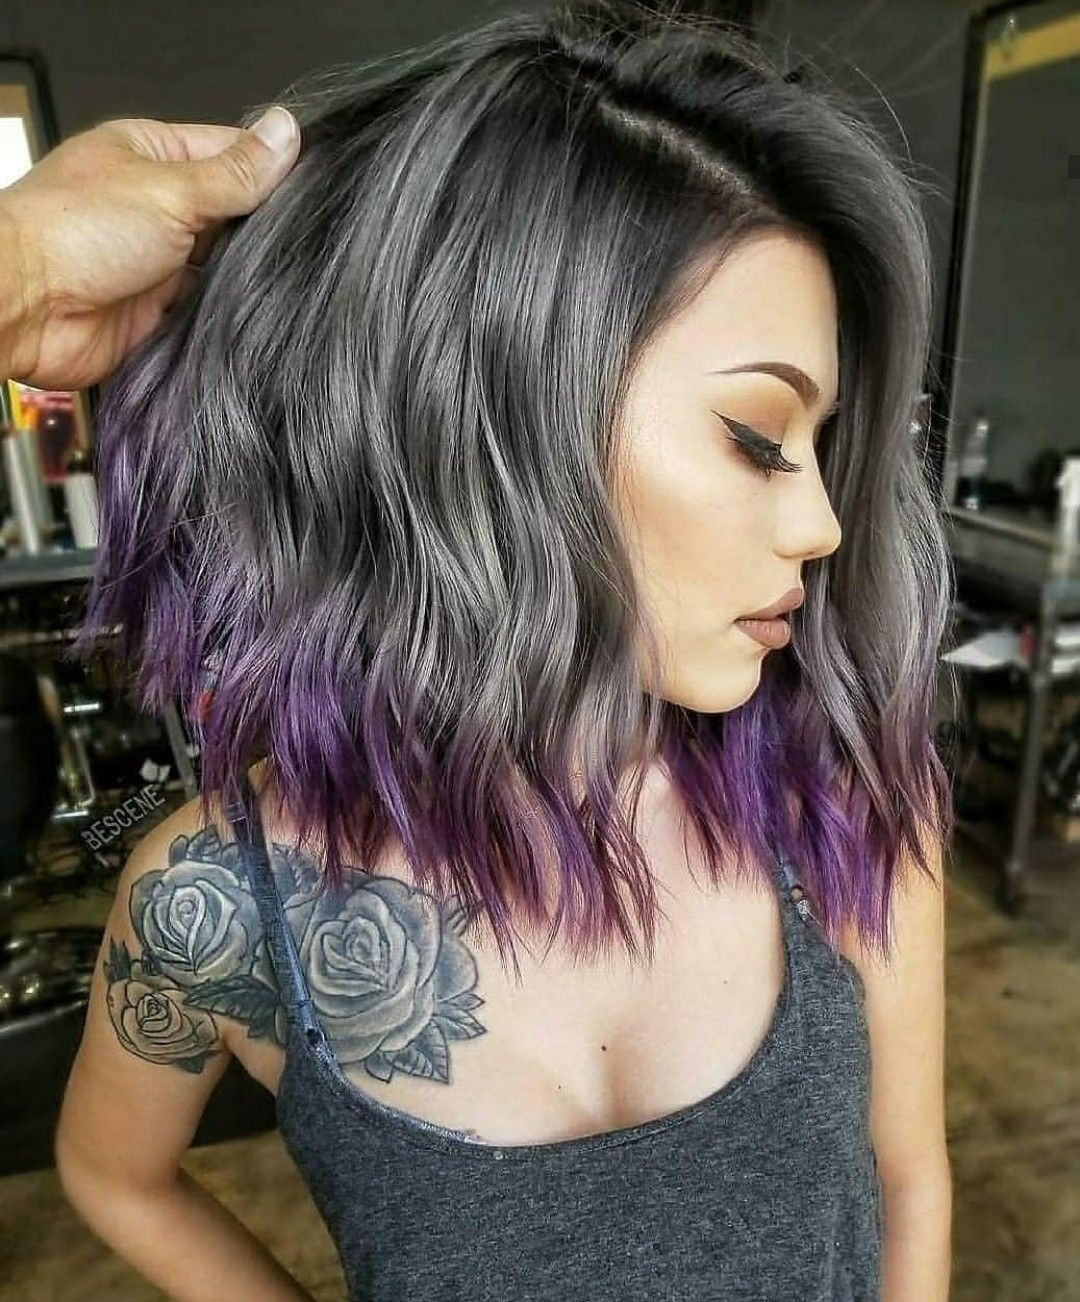 Pin By Yibily Guillen On Belleza In 2020 Black Hair Ombre Medium Length Hair Styles Hair Styles